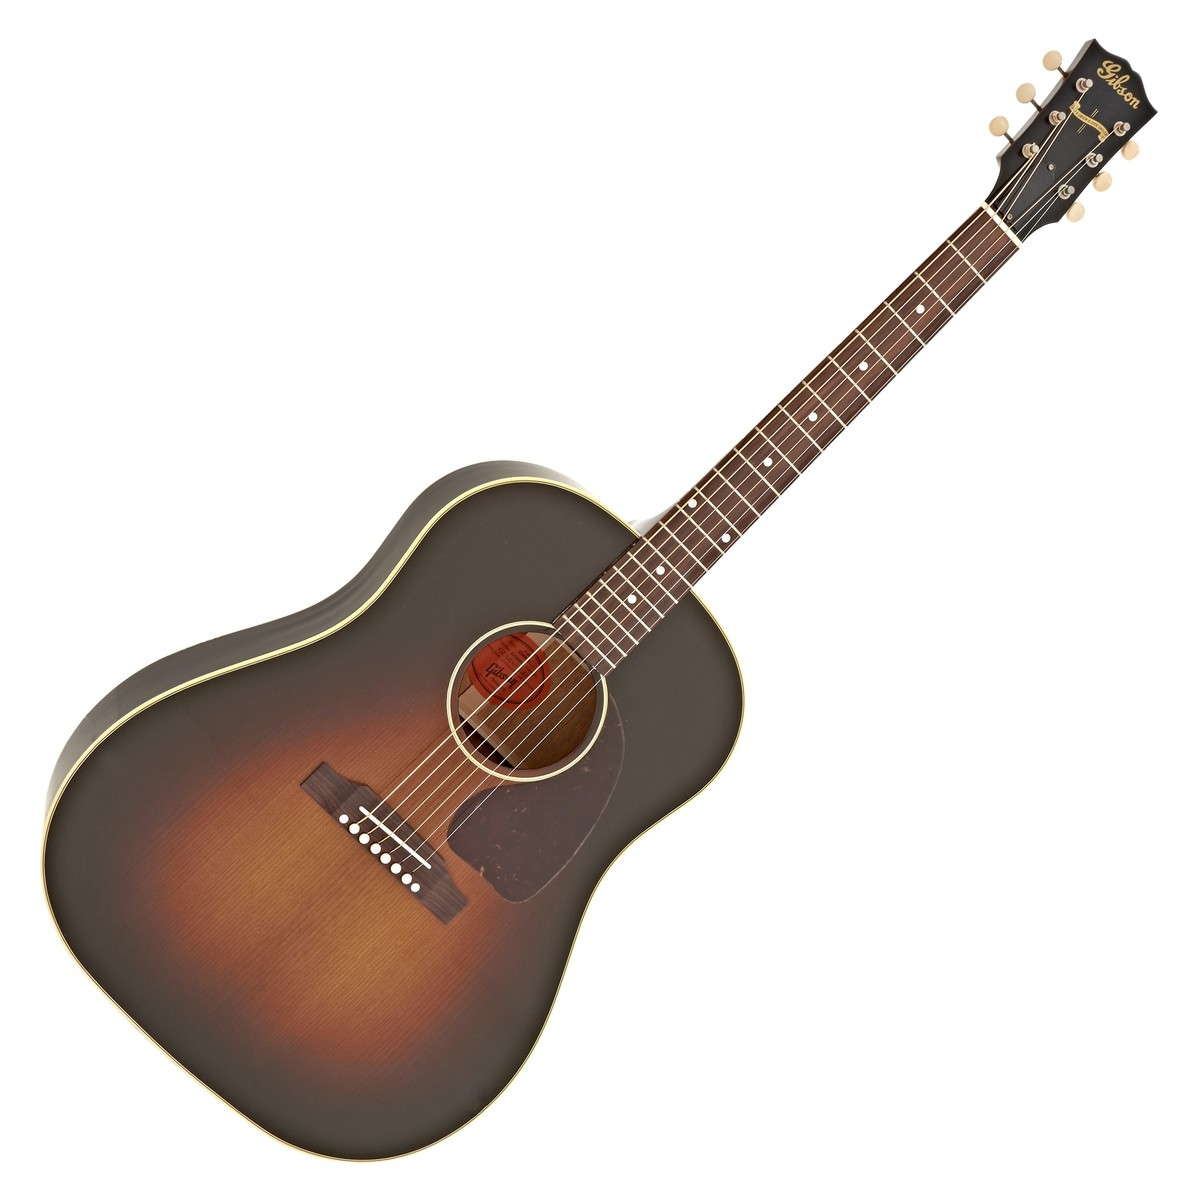 gibson j 45 vintage 2017 acoustic guitar vintage sunburst b stock at gear4music. Black Bedroom Furniture Sets. Home Design Ideas